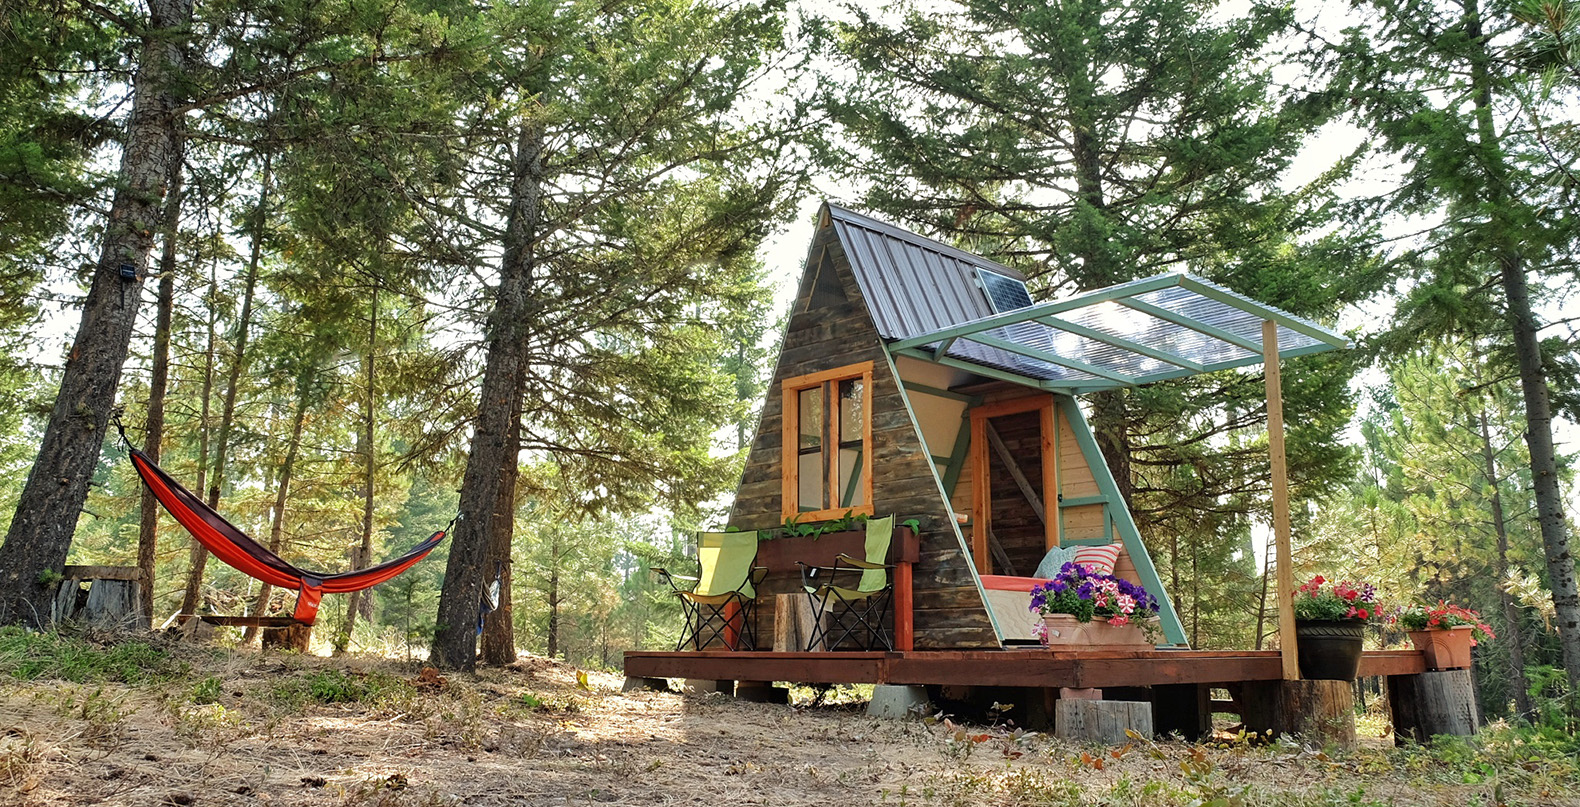 Couple builds tiny a frame cabin in three weeks for only 700 inhabitat green design - House plans for young couples energetic designs ...